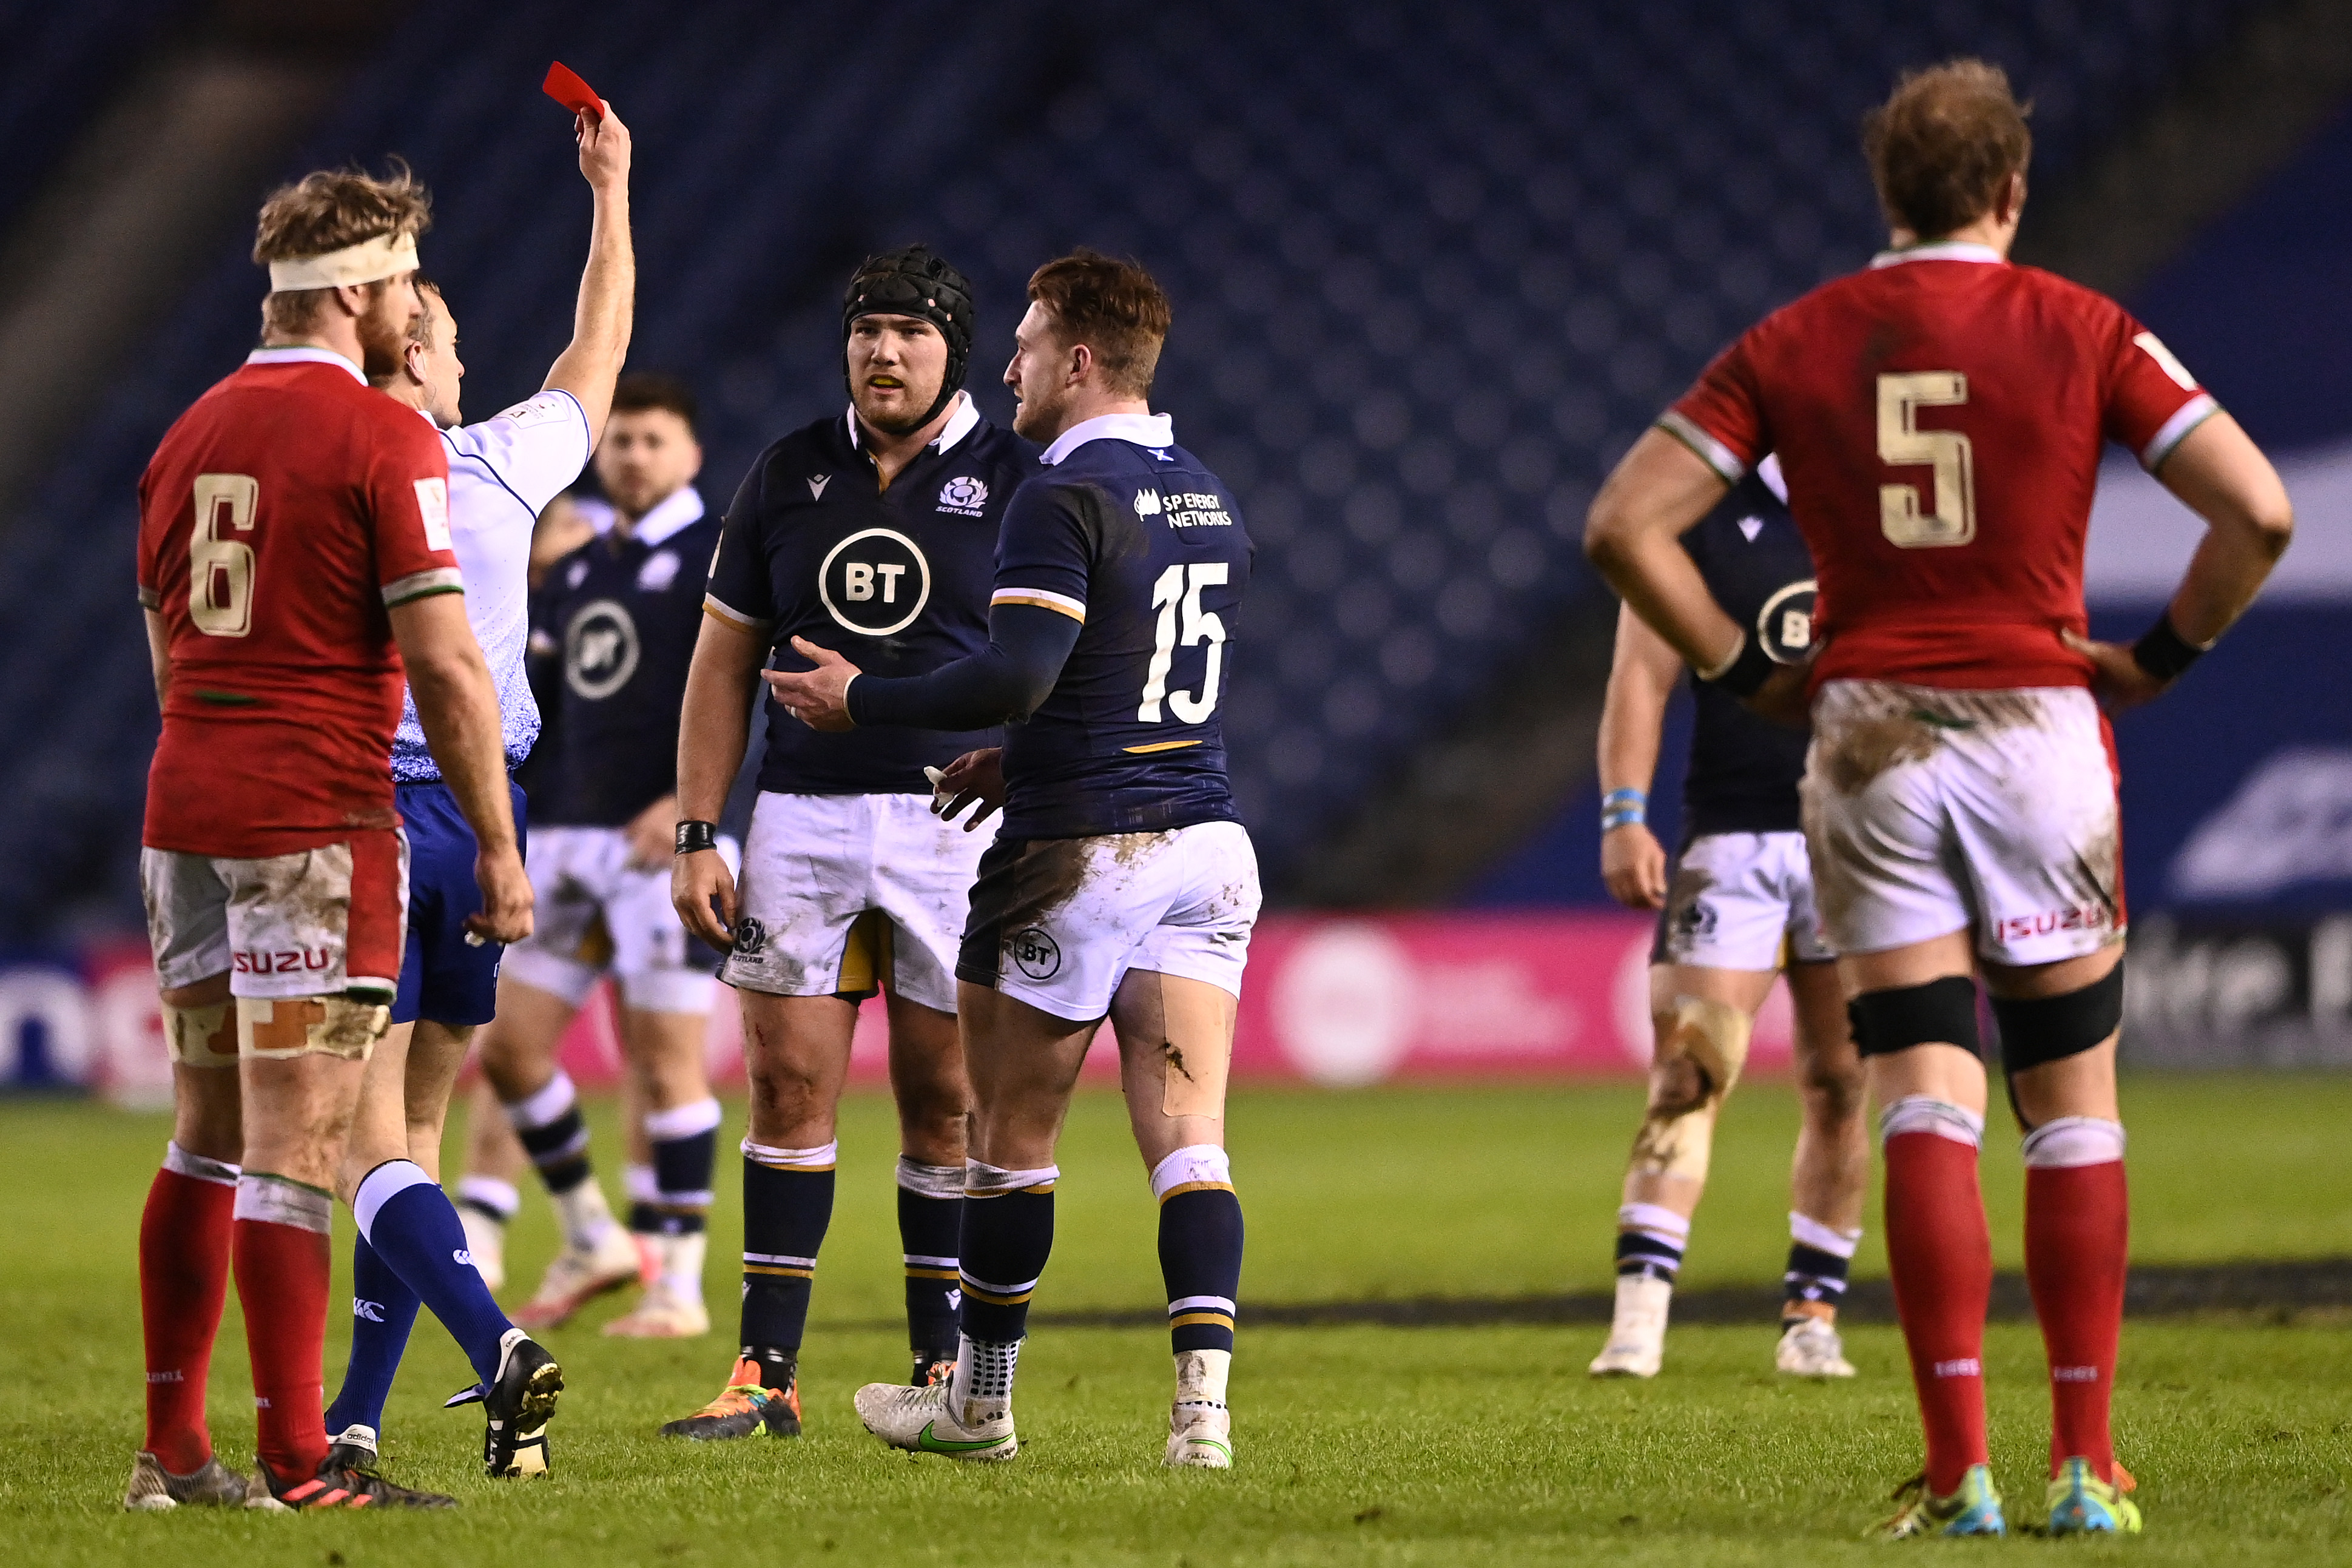 Rugby red cards: Sanctions for head contact explained - Rugby World